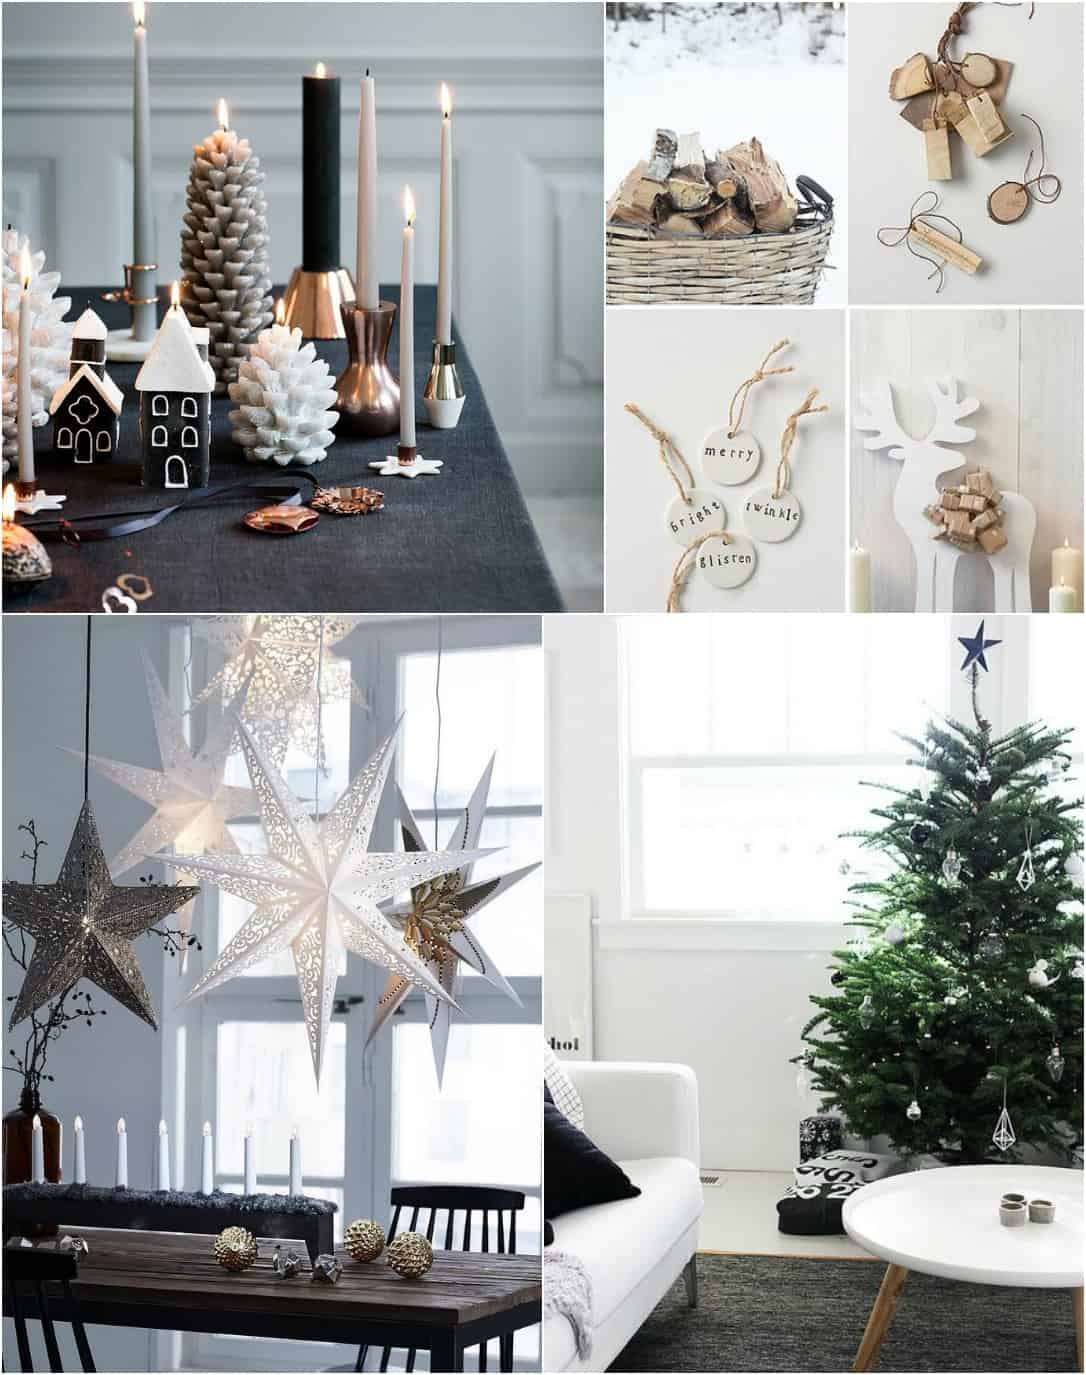 Natale arredo tendenze shabby chic stile scandinavo e for Arredamento nordico on line